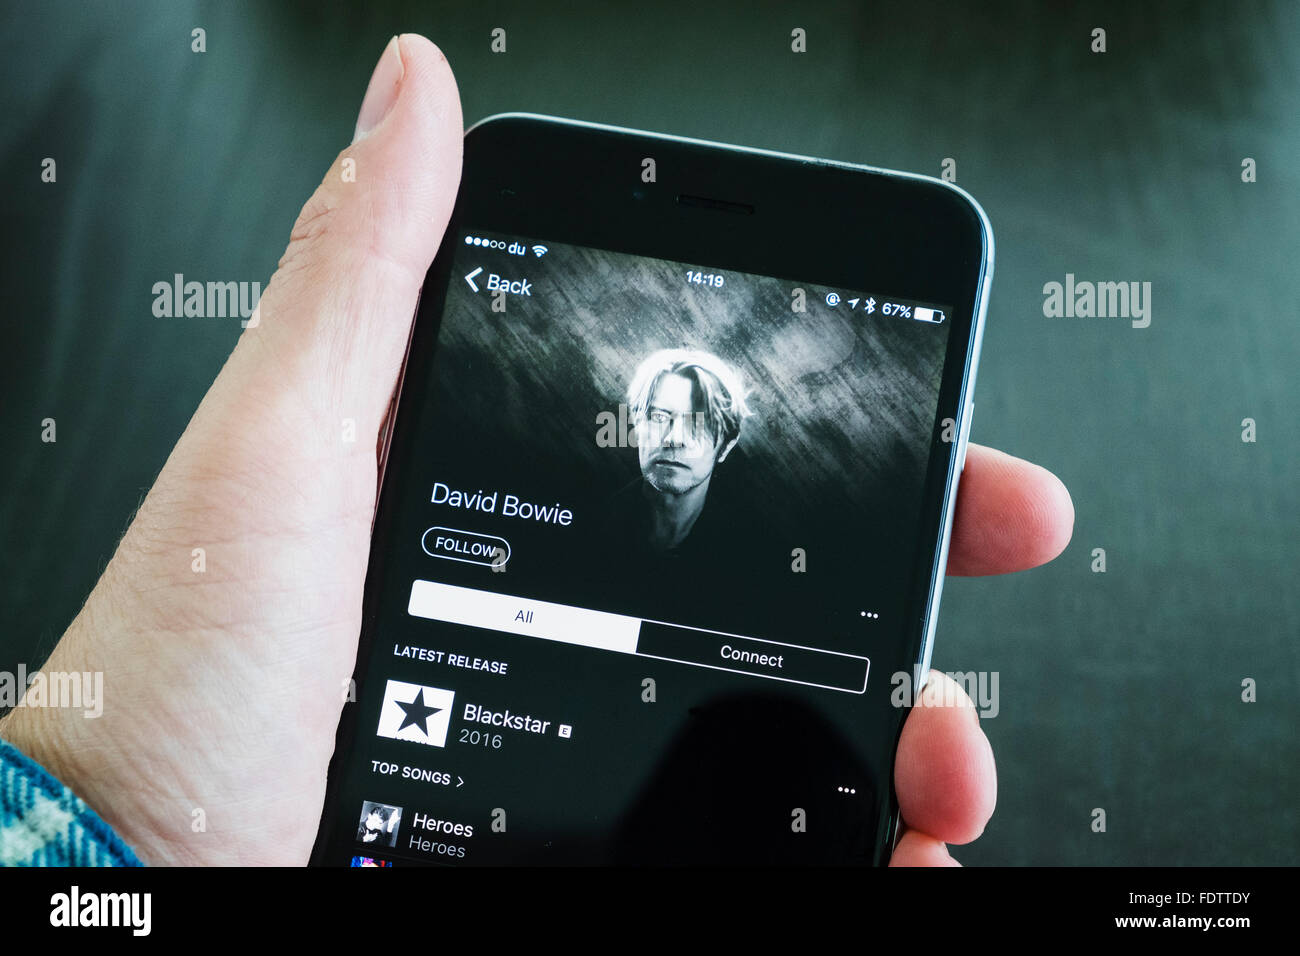 David Bowie album Backstair su Apple servizio di streaming musicale su un iPhone 6 plus smart phone Immagini Stock